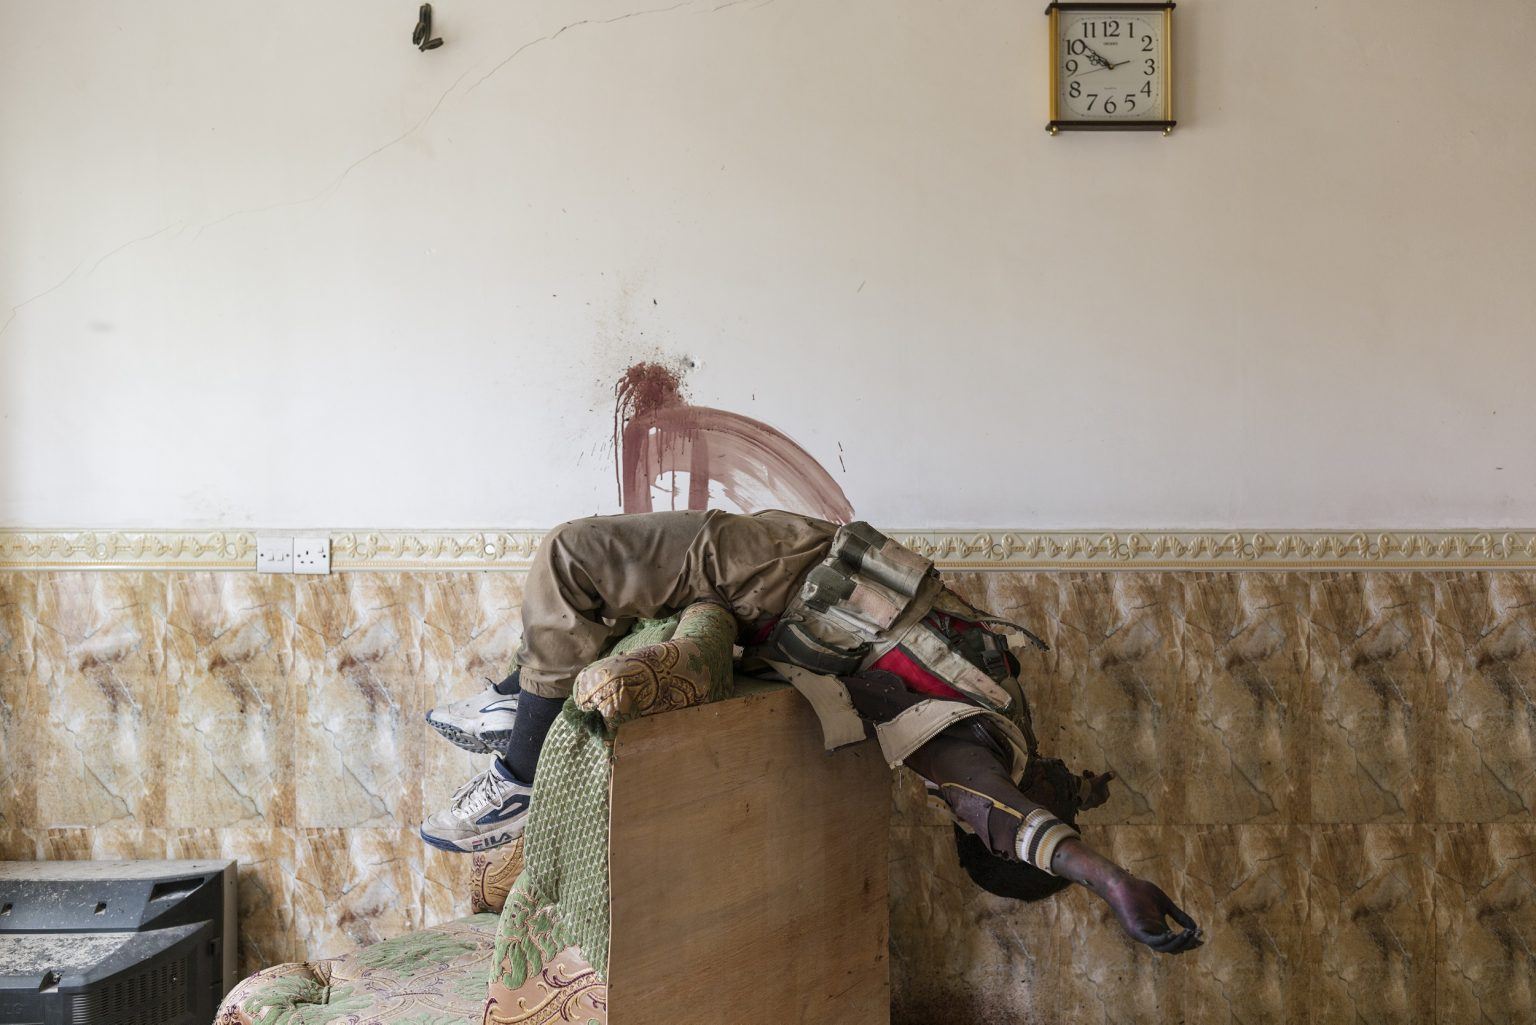 Mosu, Iraq - May 13th 2017 - The body of an Islamic State fighter is seen inside an house of the new liberated area of the city of Mosul. Ph.Giulio Piscitelli